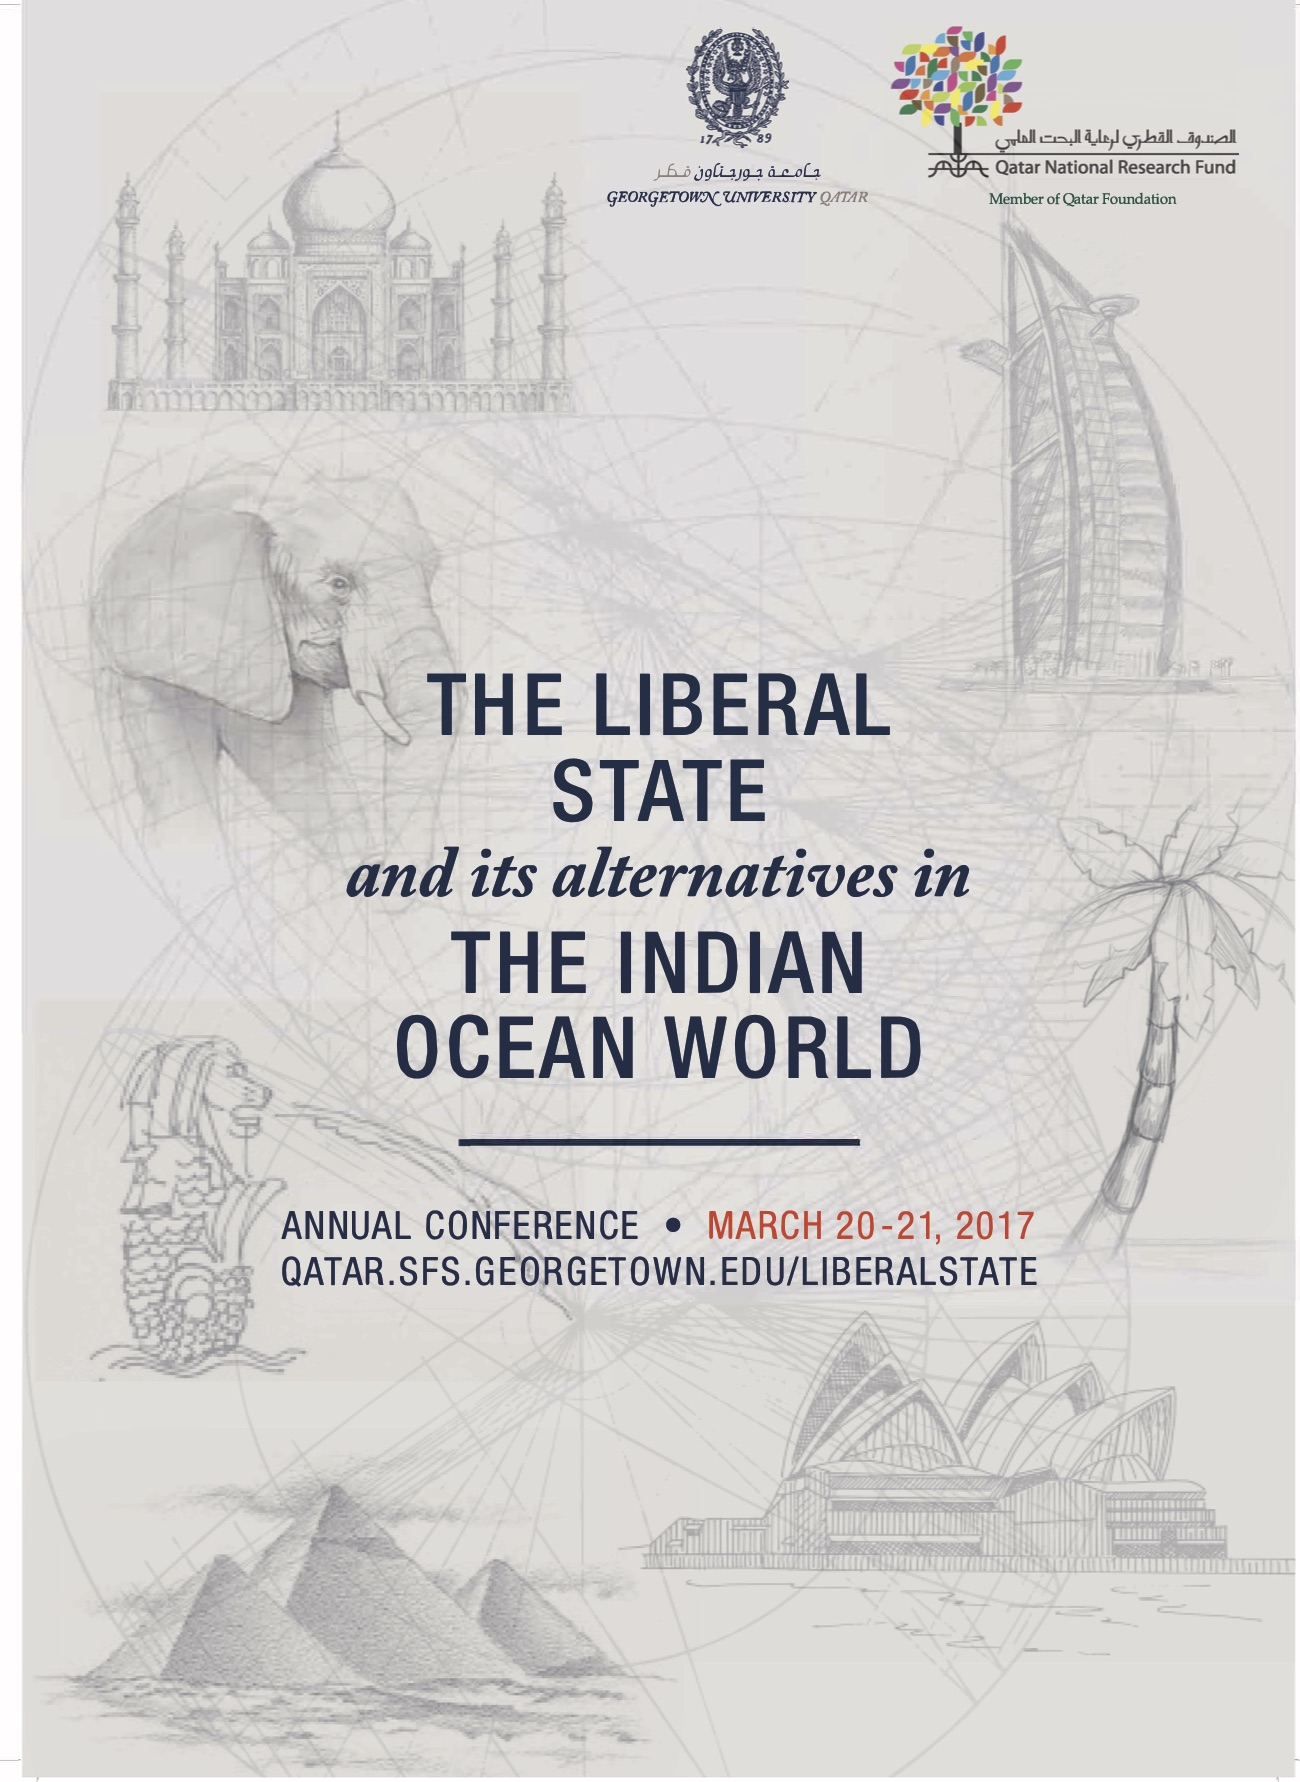 Liberal State Conference